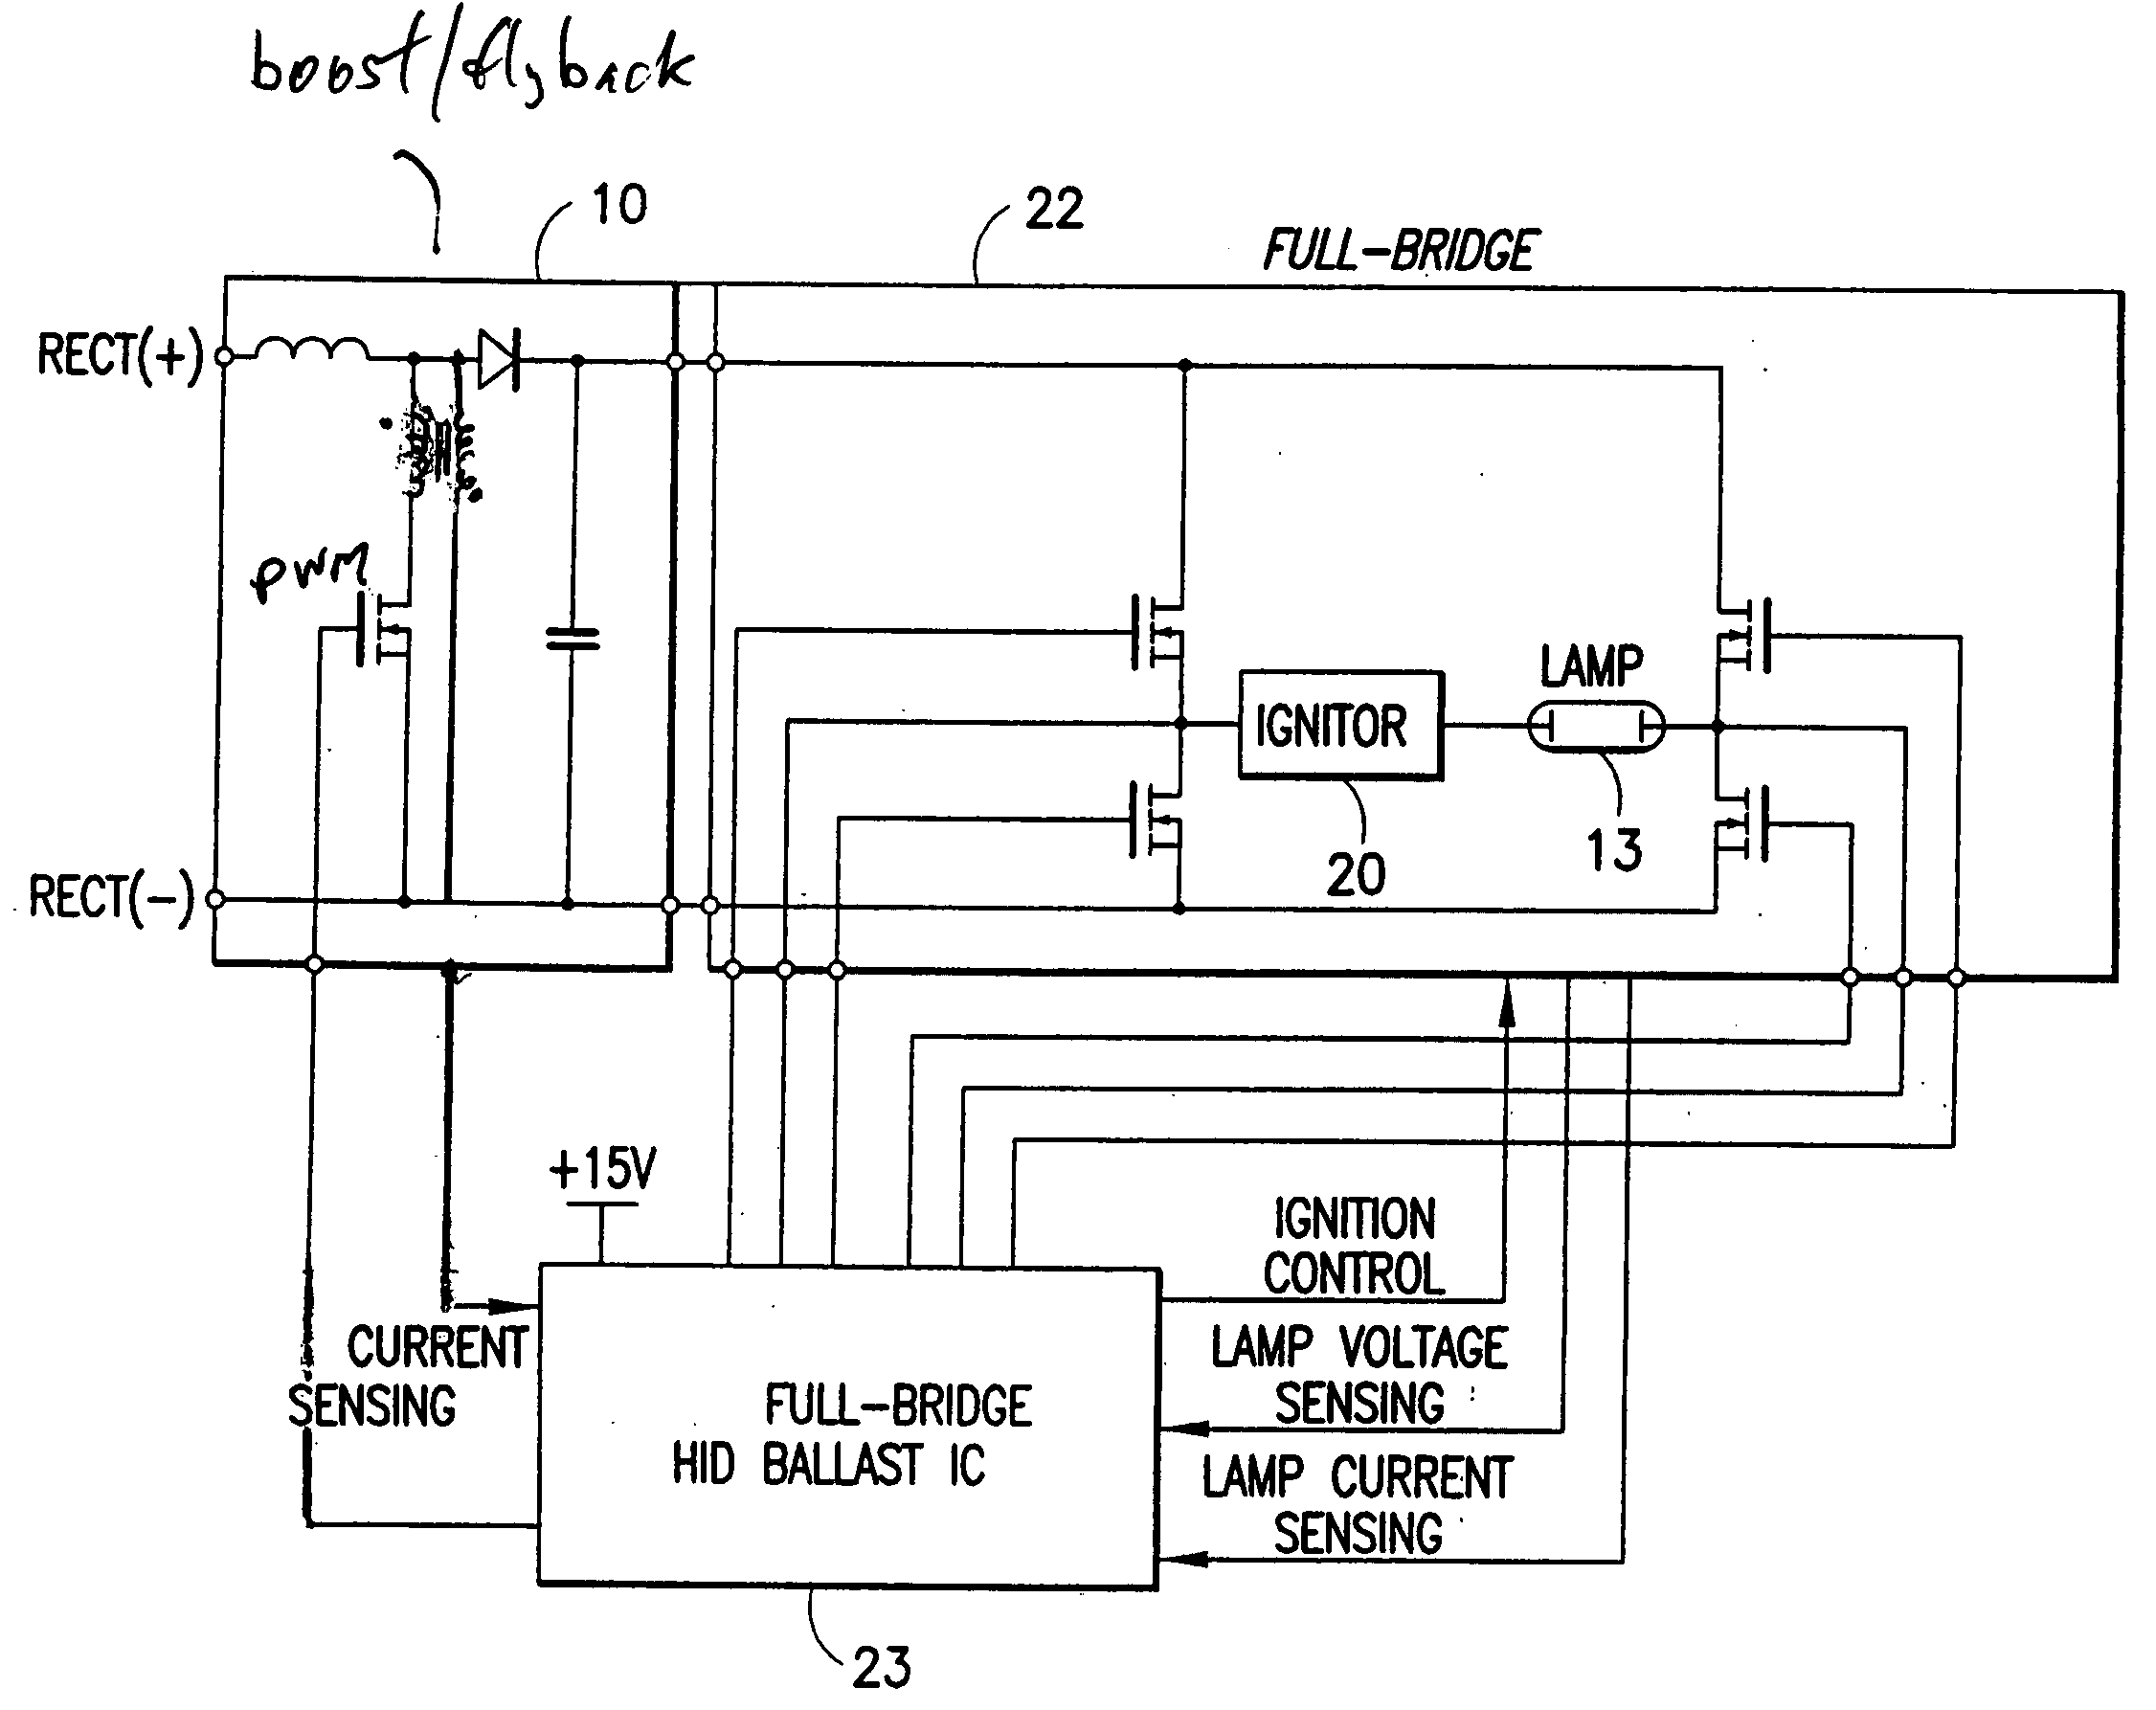 Hid Ballast Circuit Diagram Simple Wiring Options Using Incandescent And Capacitor Ledandlightcircuit Patent Us20060197470 Automotive High Intensity Discharge Lamp Harness